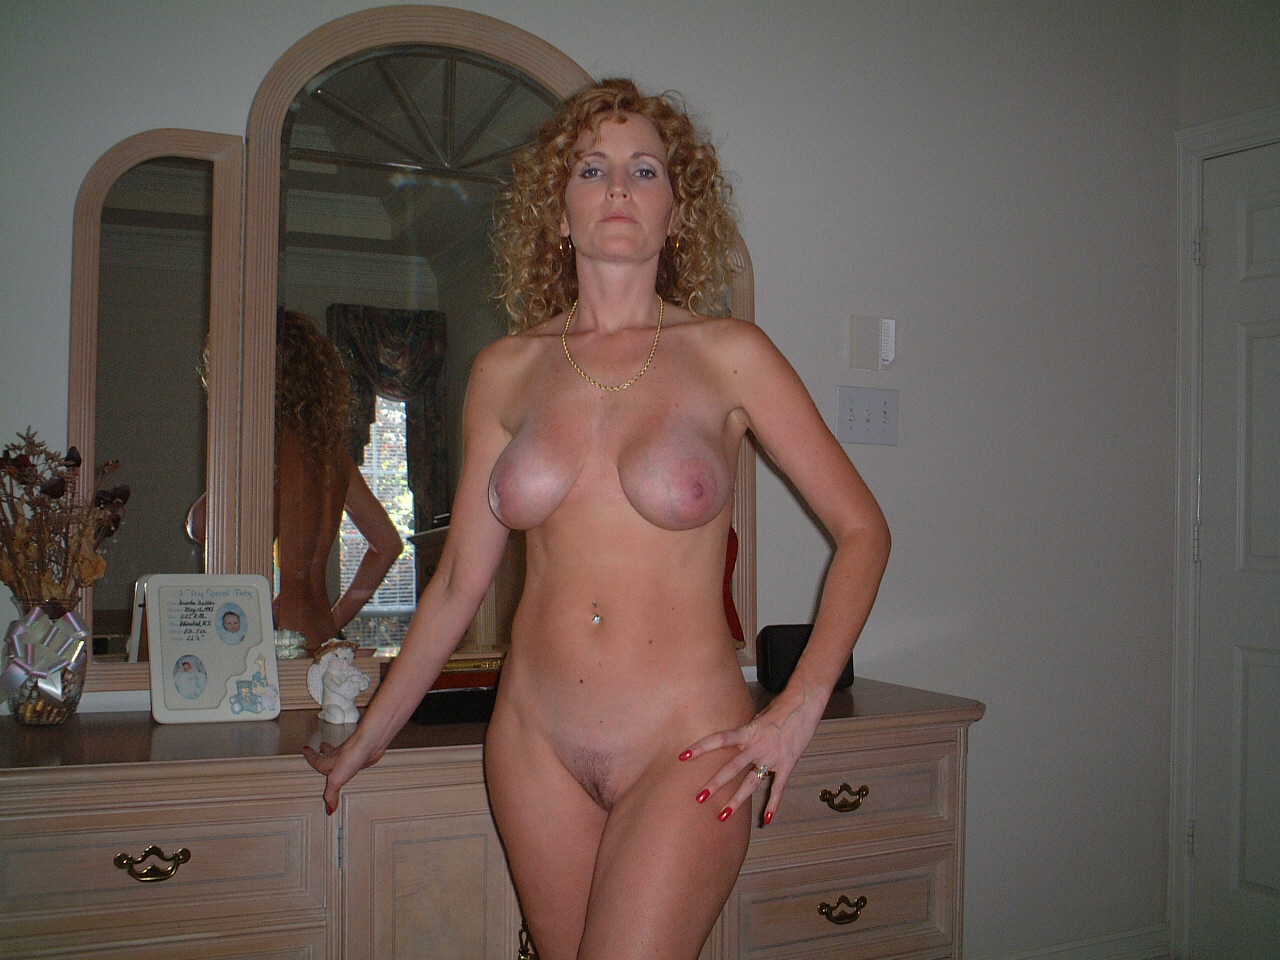 nude-homemade-sexy-poses-wife